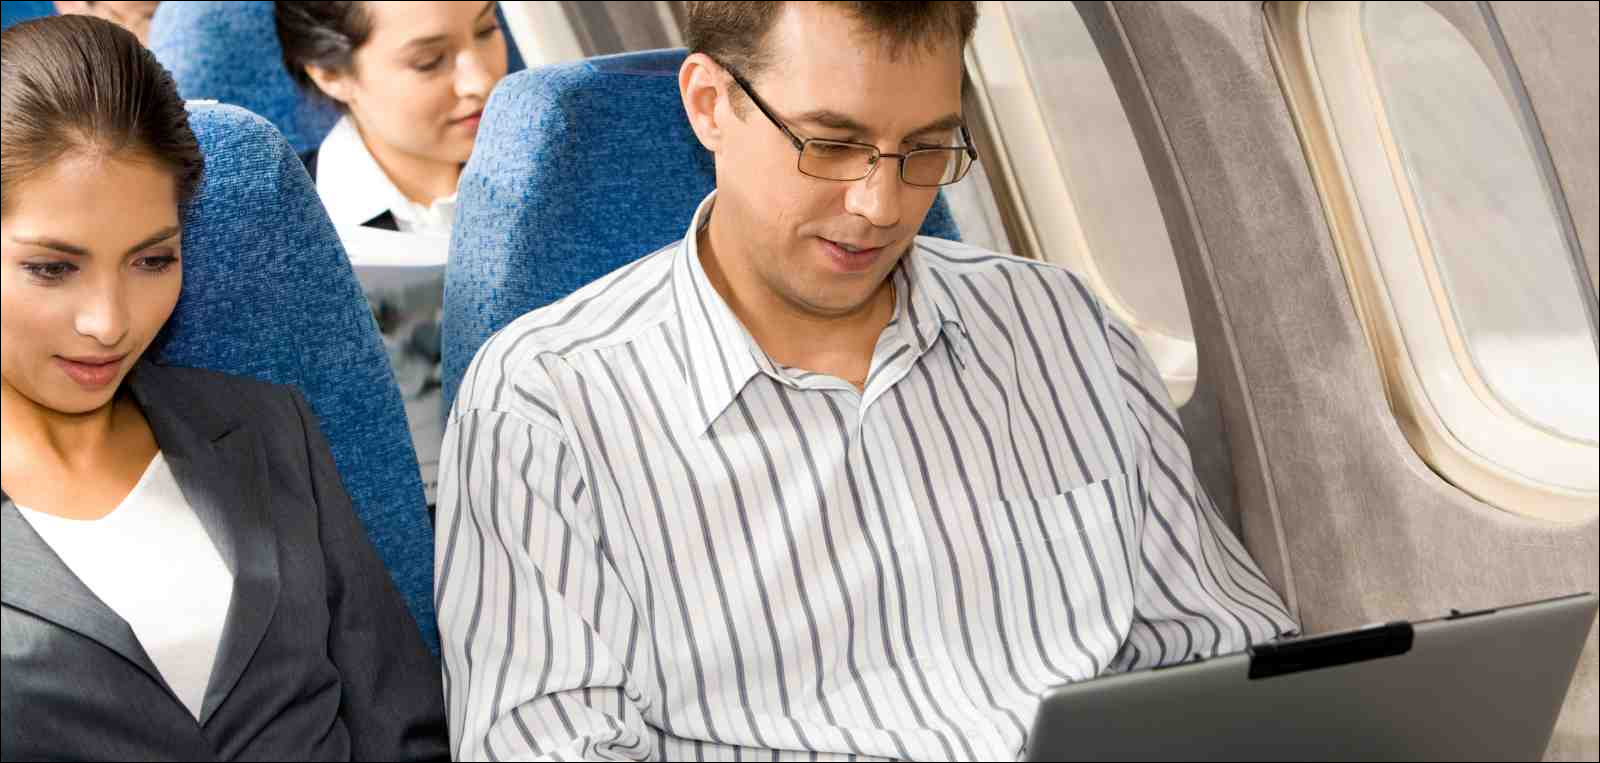 man and woman typing on laptops during flight